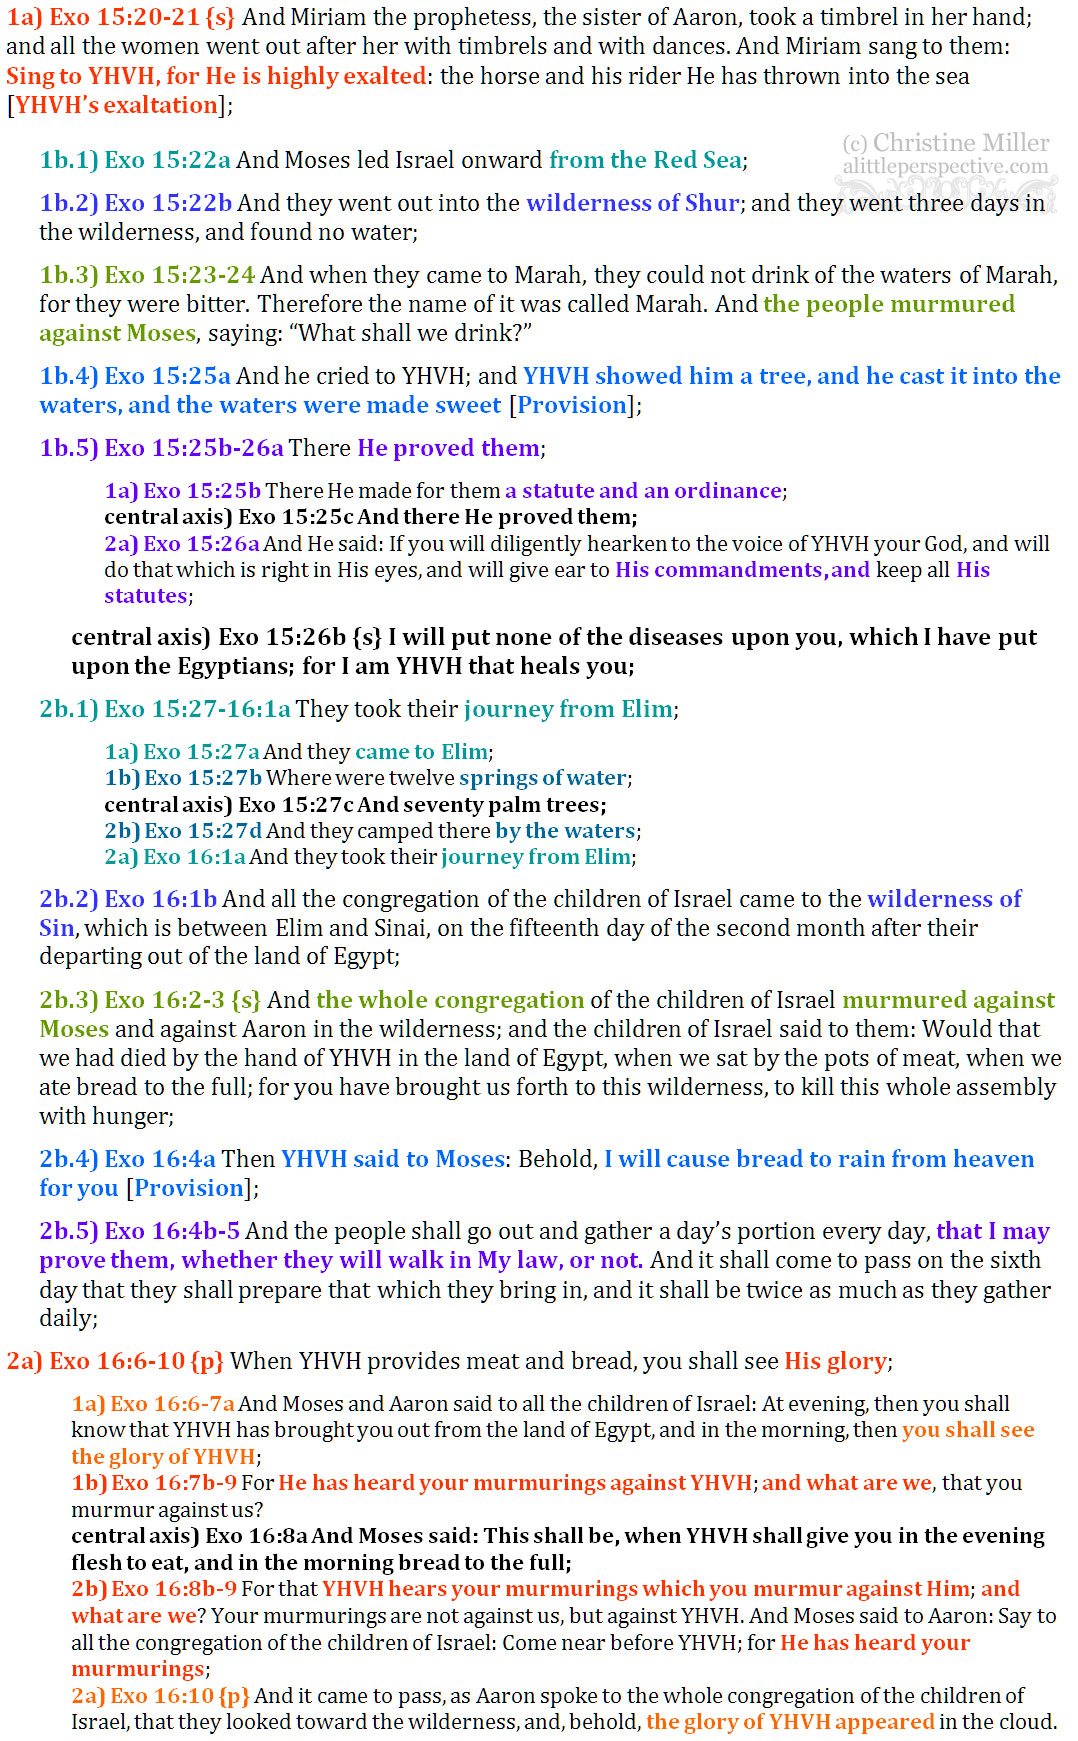 Exo 15:20-16:10 chiasm | christine's bible study at alittleperspective.com